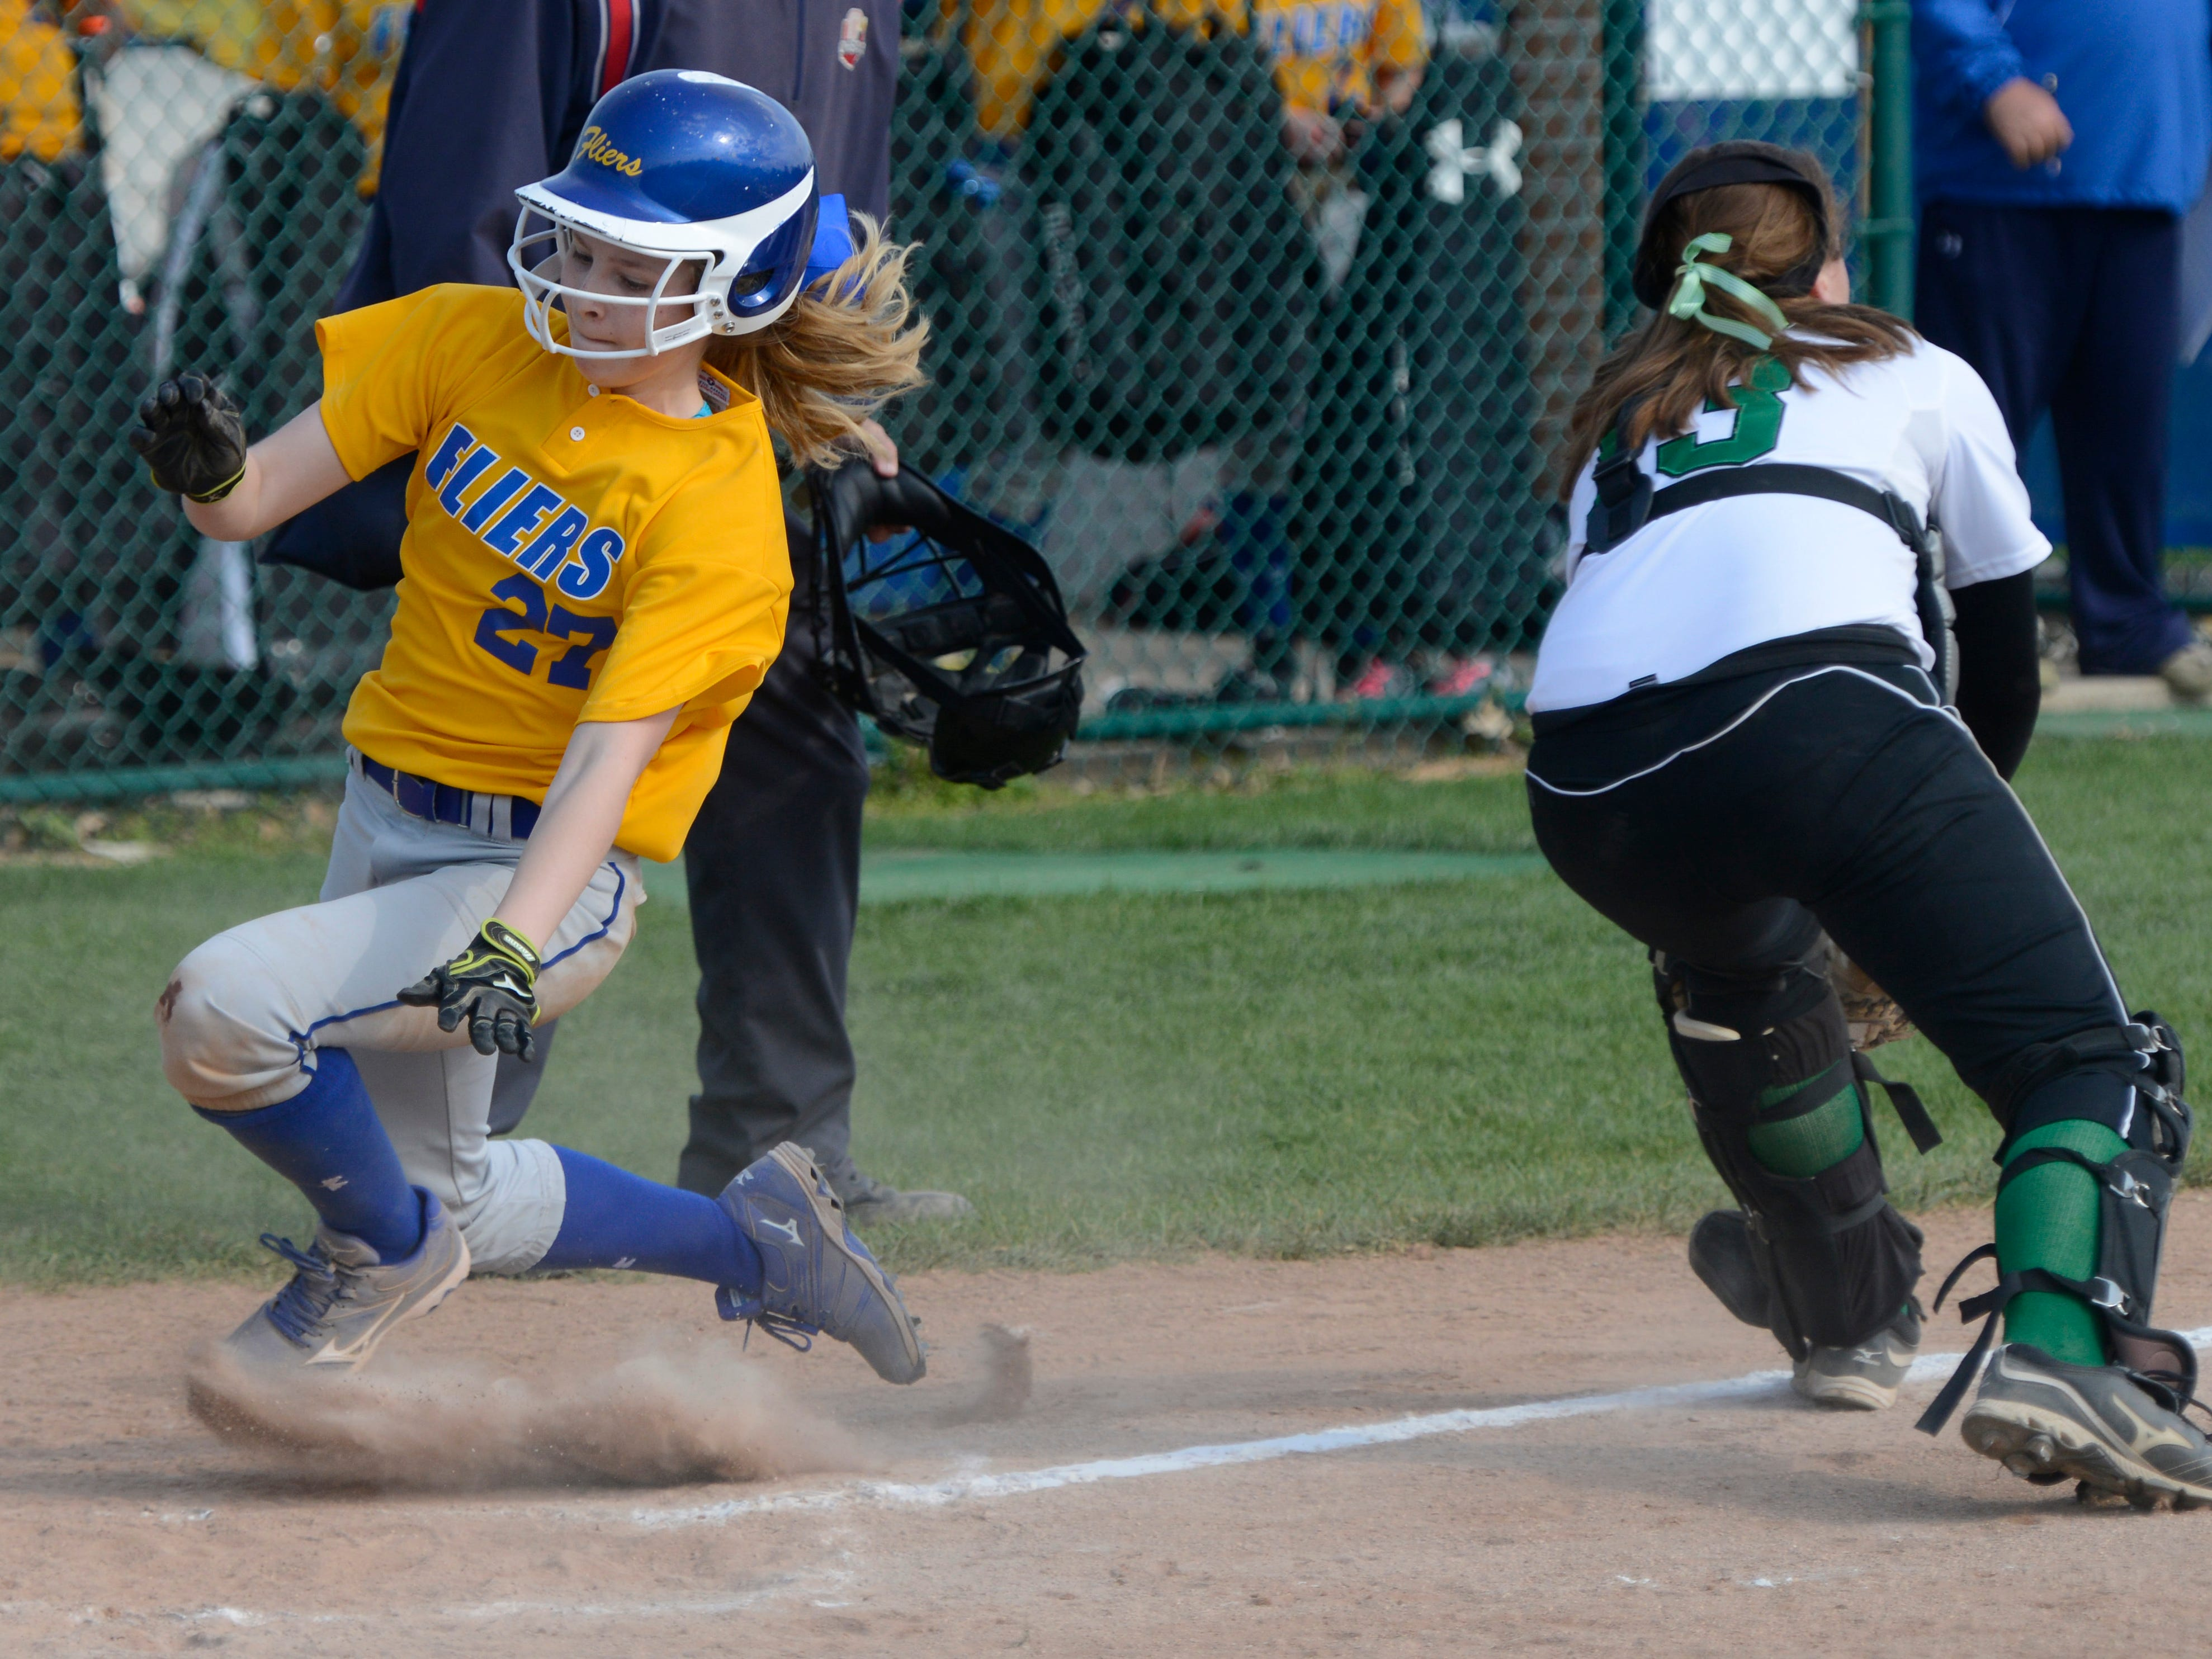 Clyde's Heidi Marshall gets past Margaretta's catcher Jess Hamm to score in the second inning.